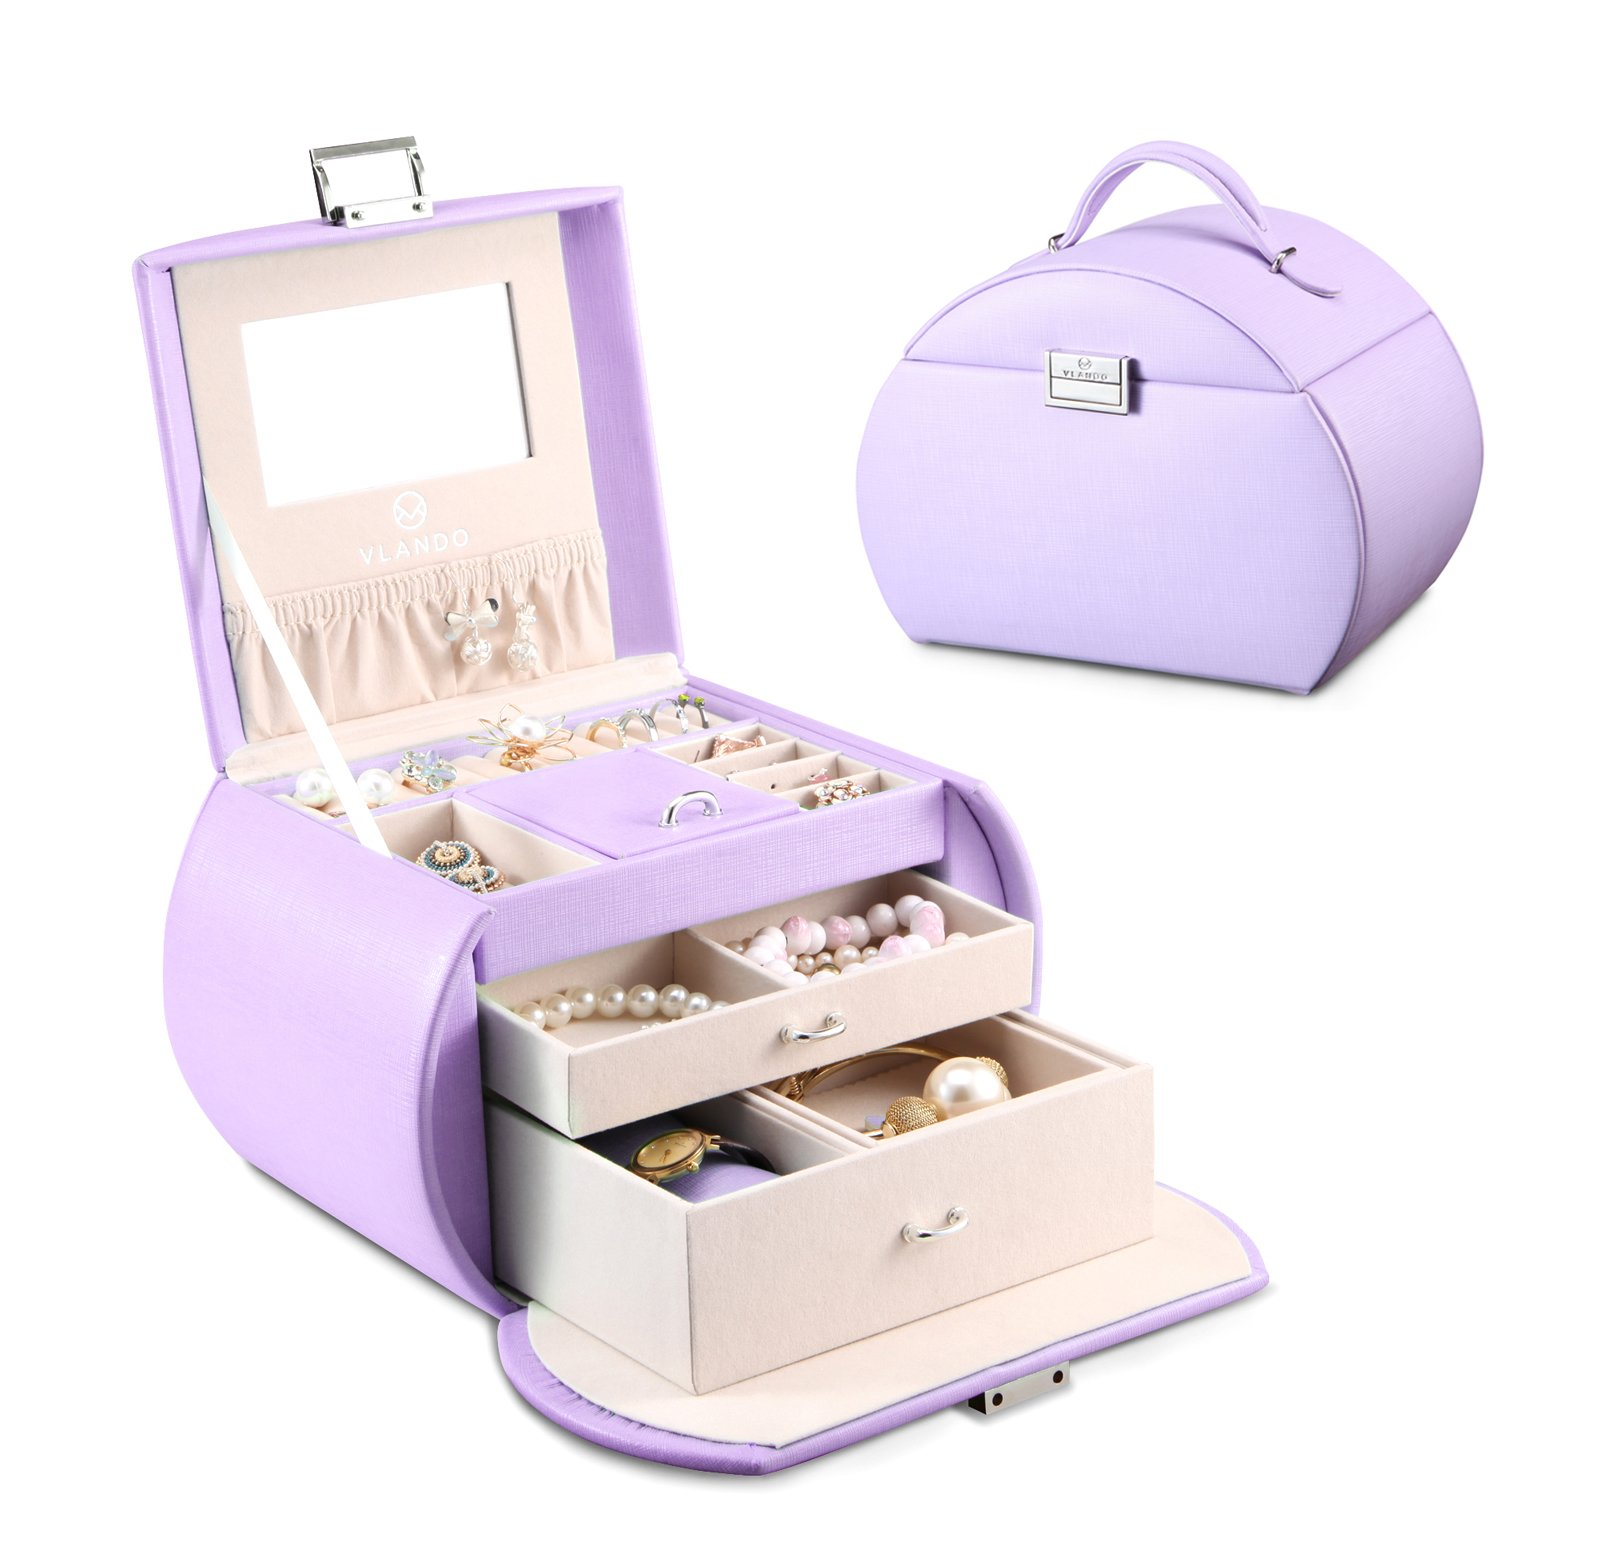 Vlando Princess Style Jewelry Box from Netherlands Design Team, Fabulous Christmas Gift for Girls (Purple) by Vlando